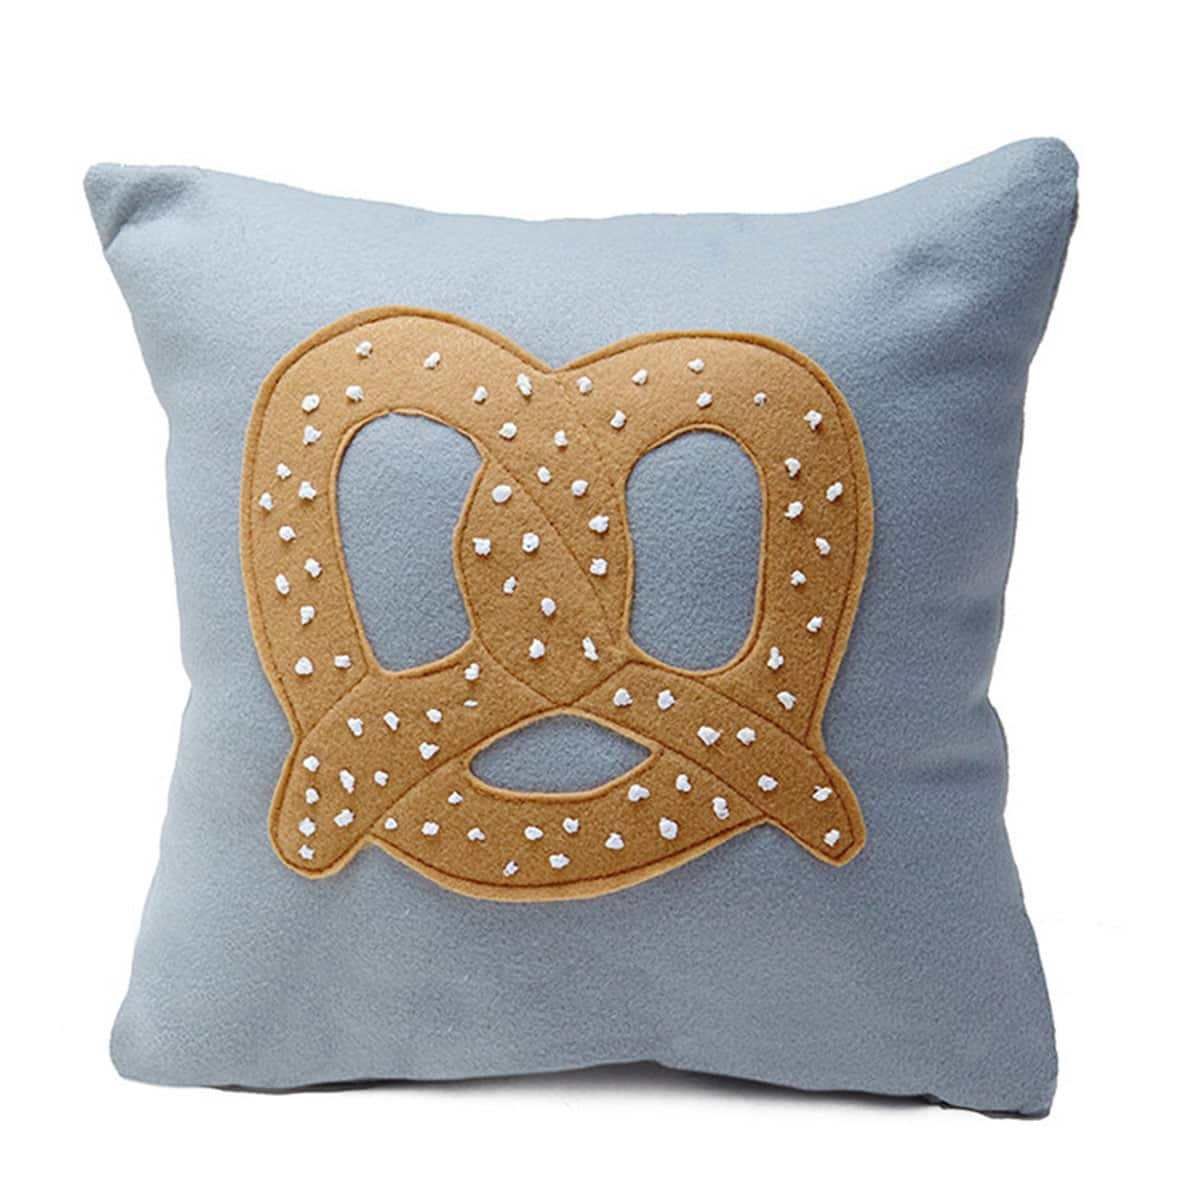 10 Food-Themed Pillows So Cute You Could Eat Them: gallery image 4